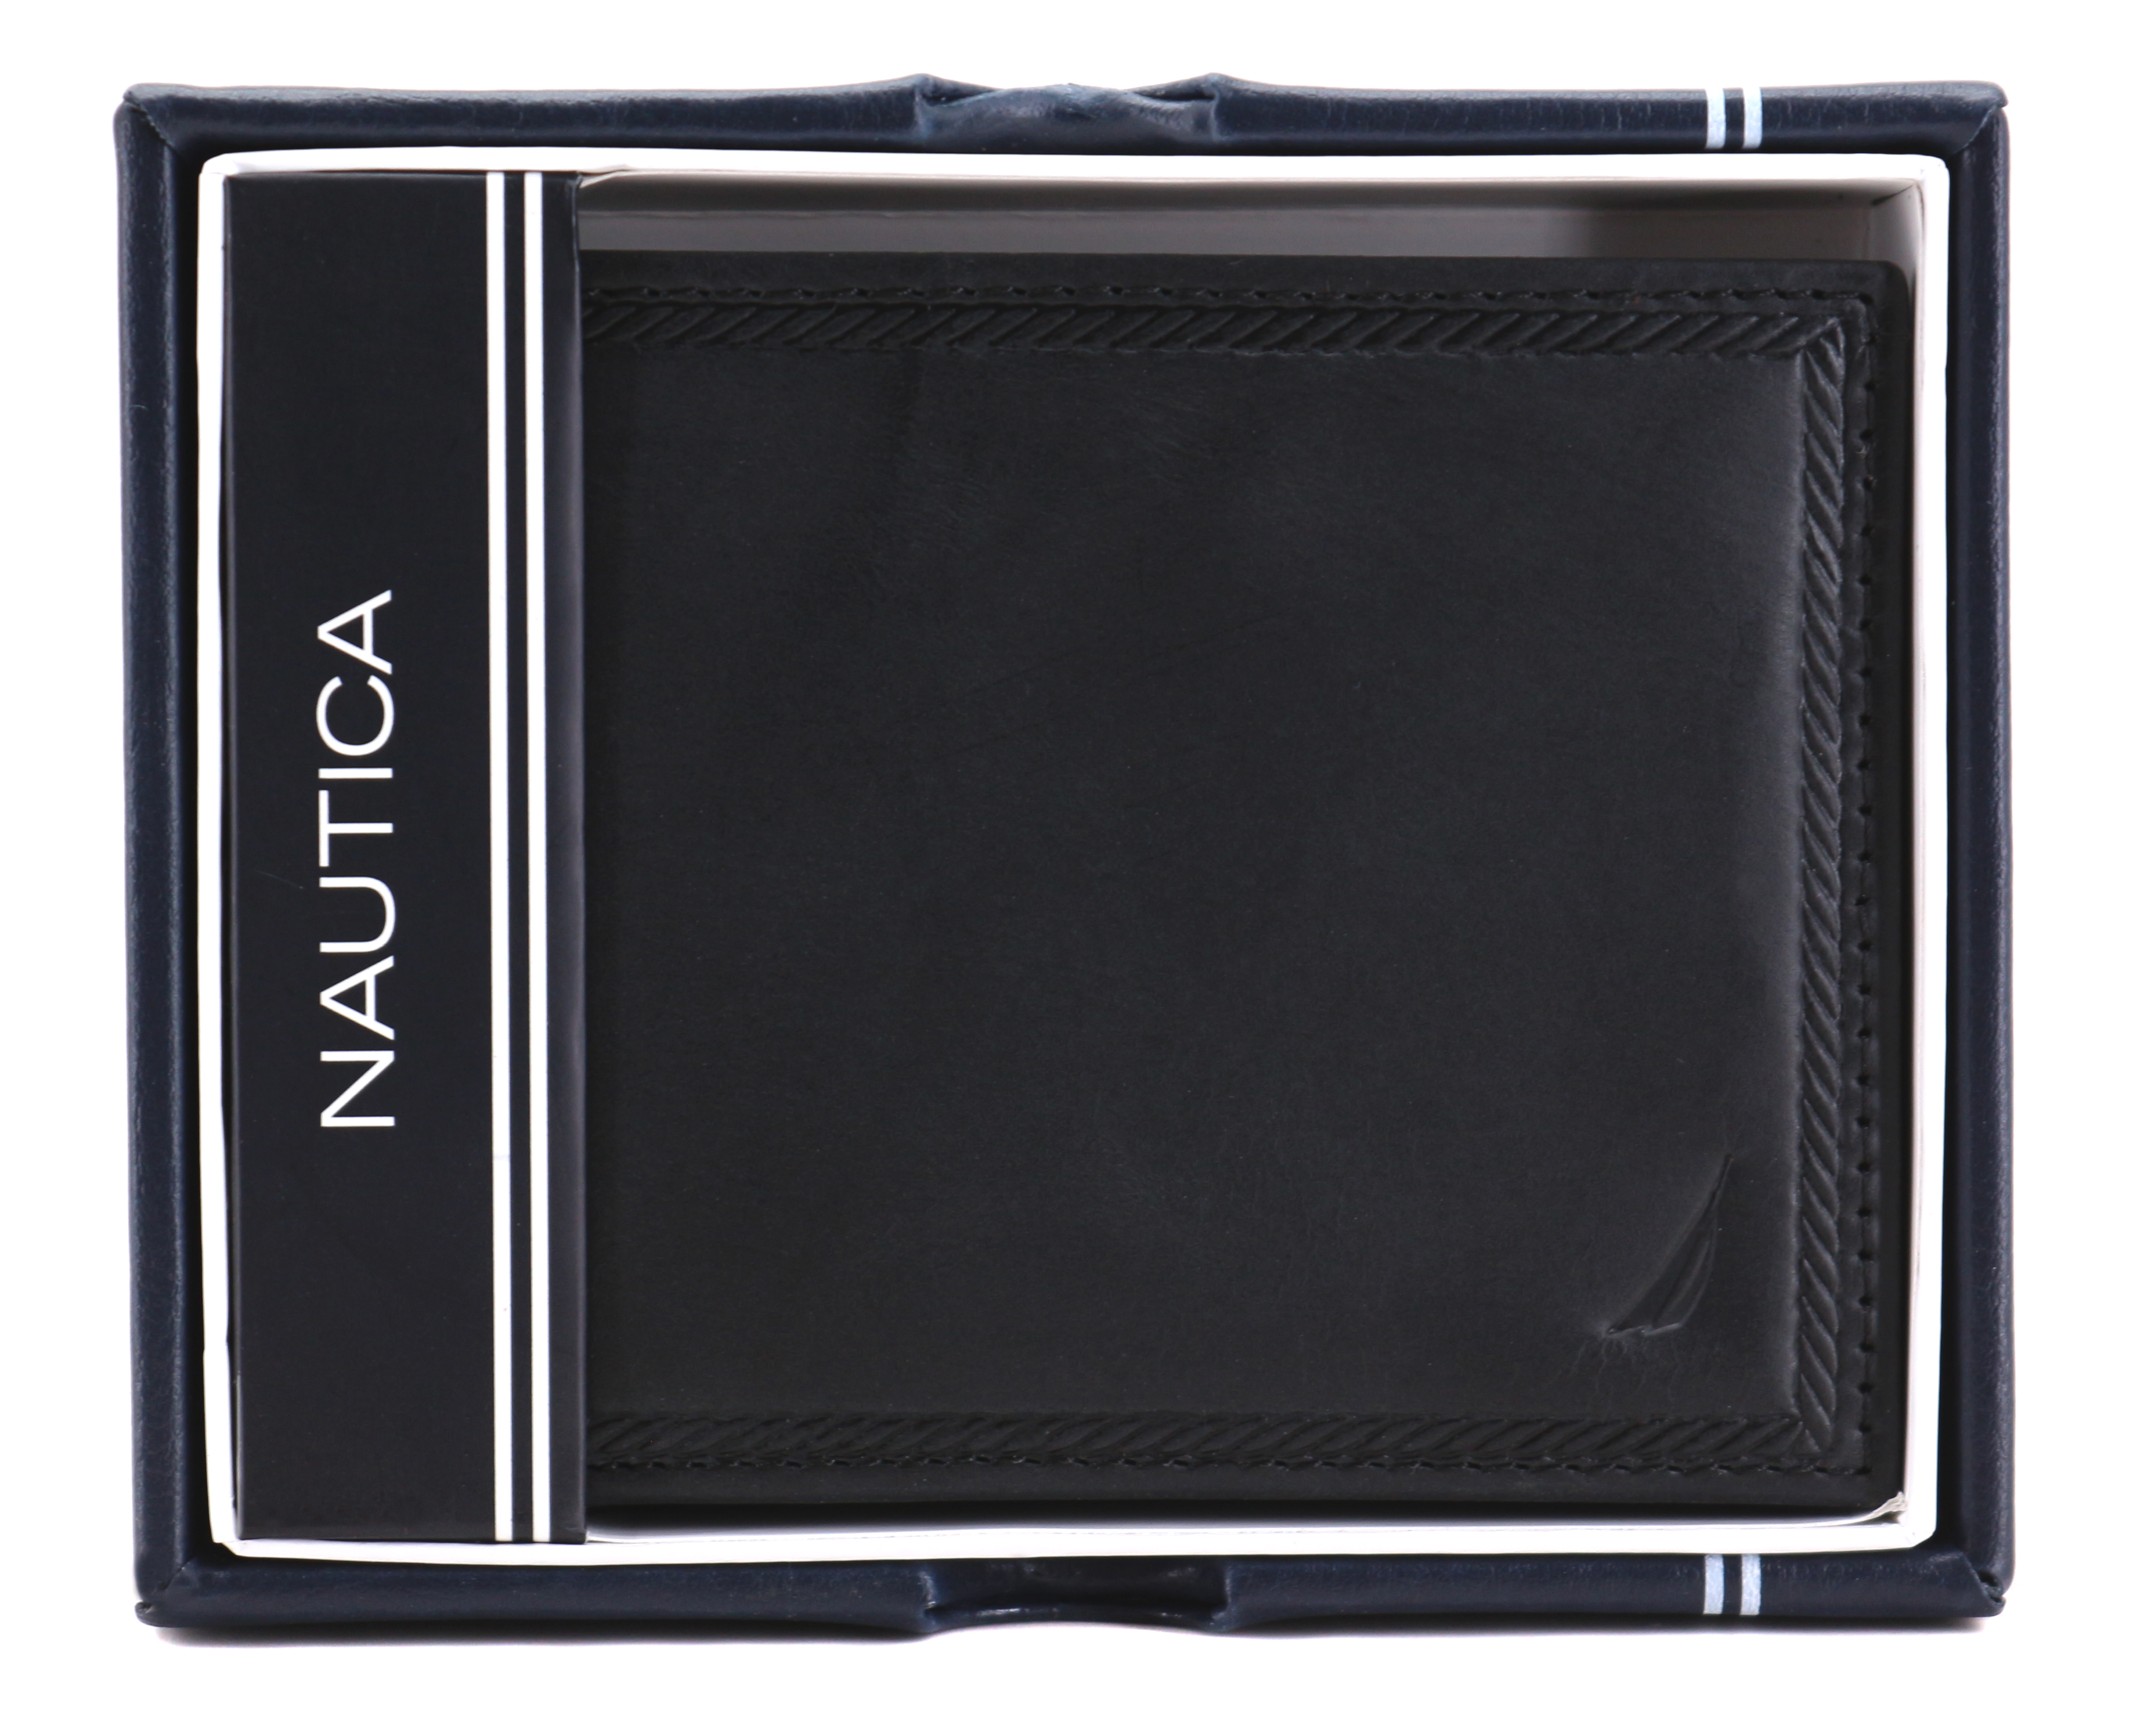 Nautica-Men-039-s-Genuine-Vintage-Leather-Credit-Card-ID-Billfold-Passcase-Wallet thumbnail 9